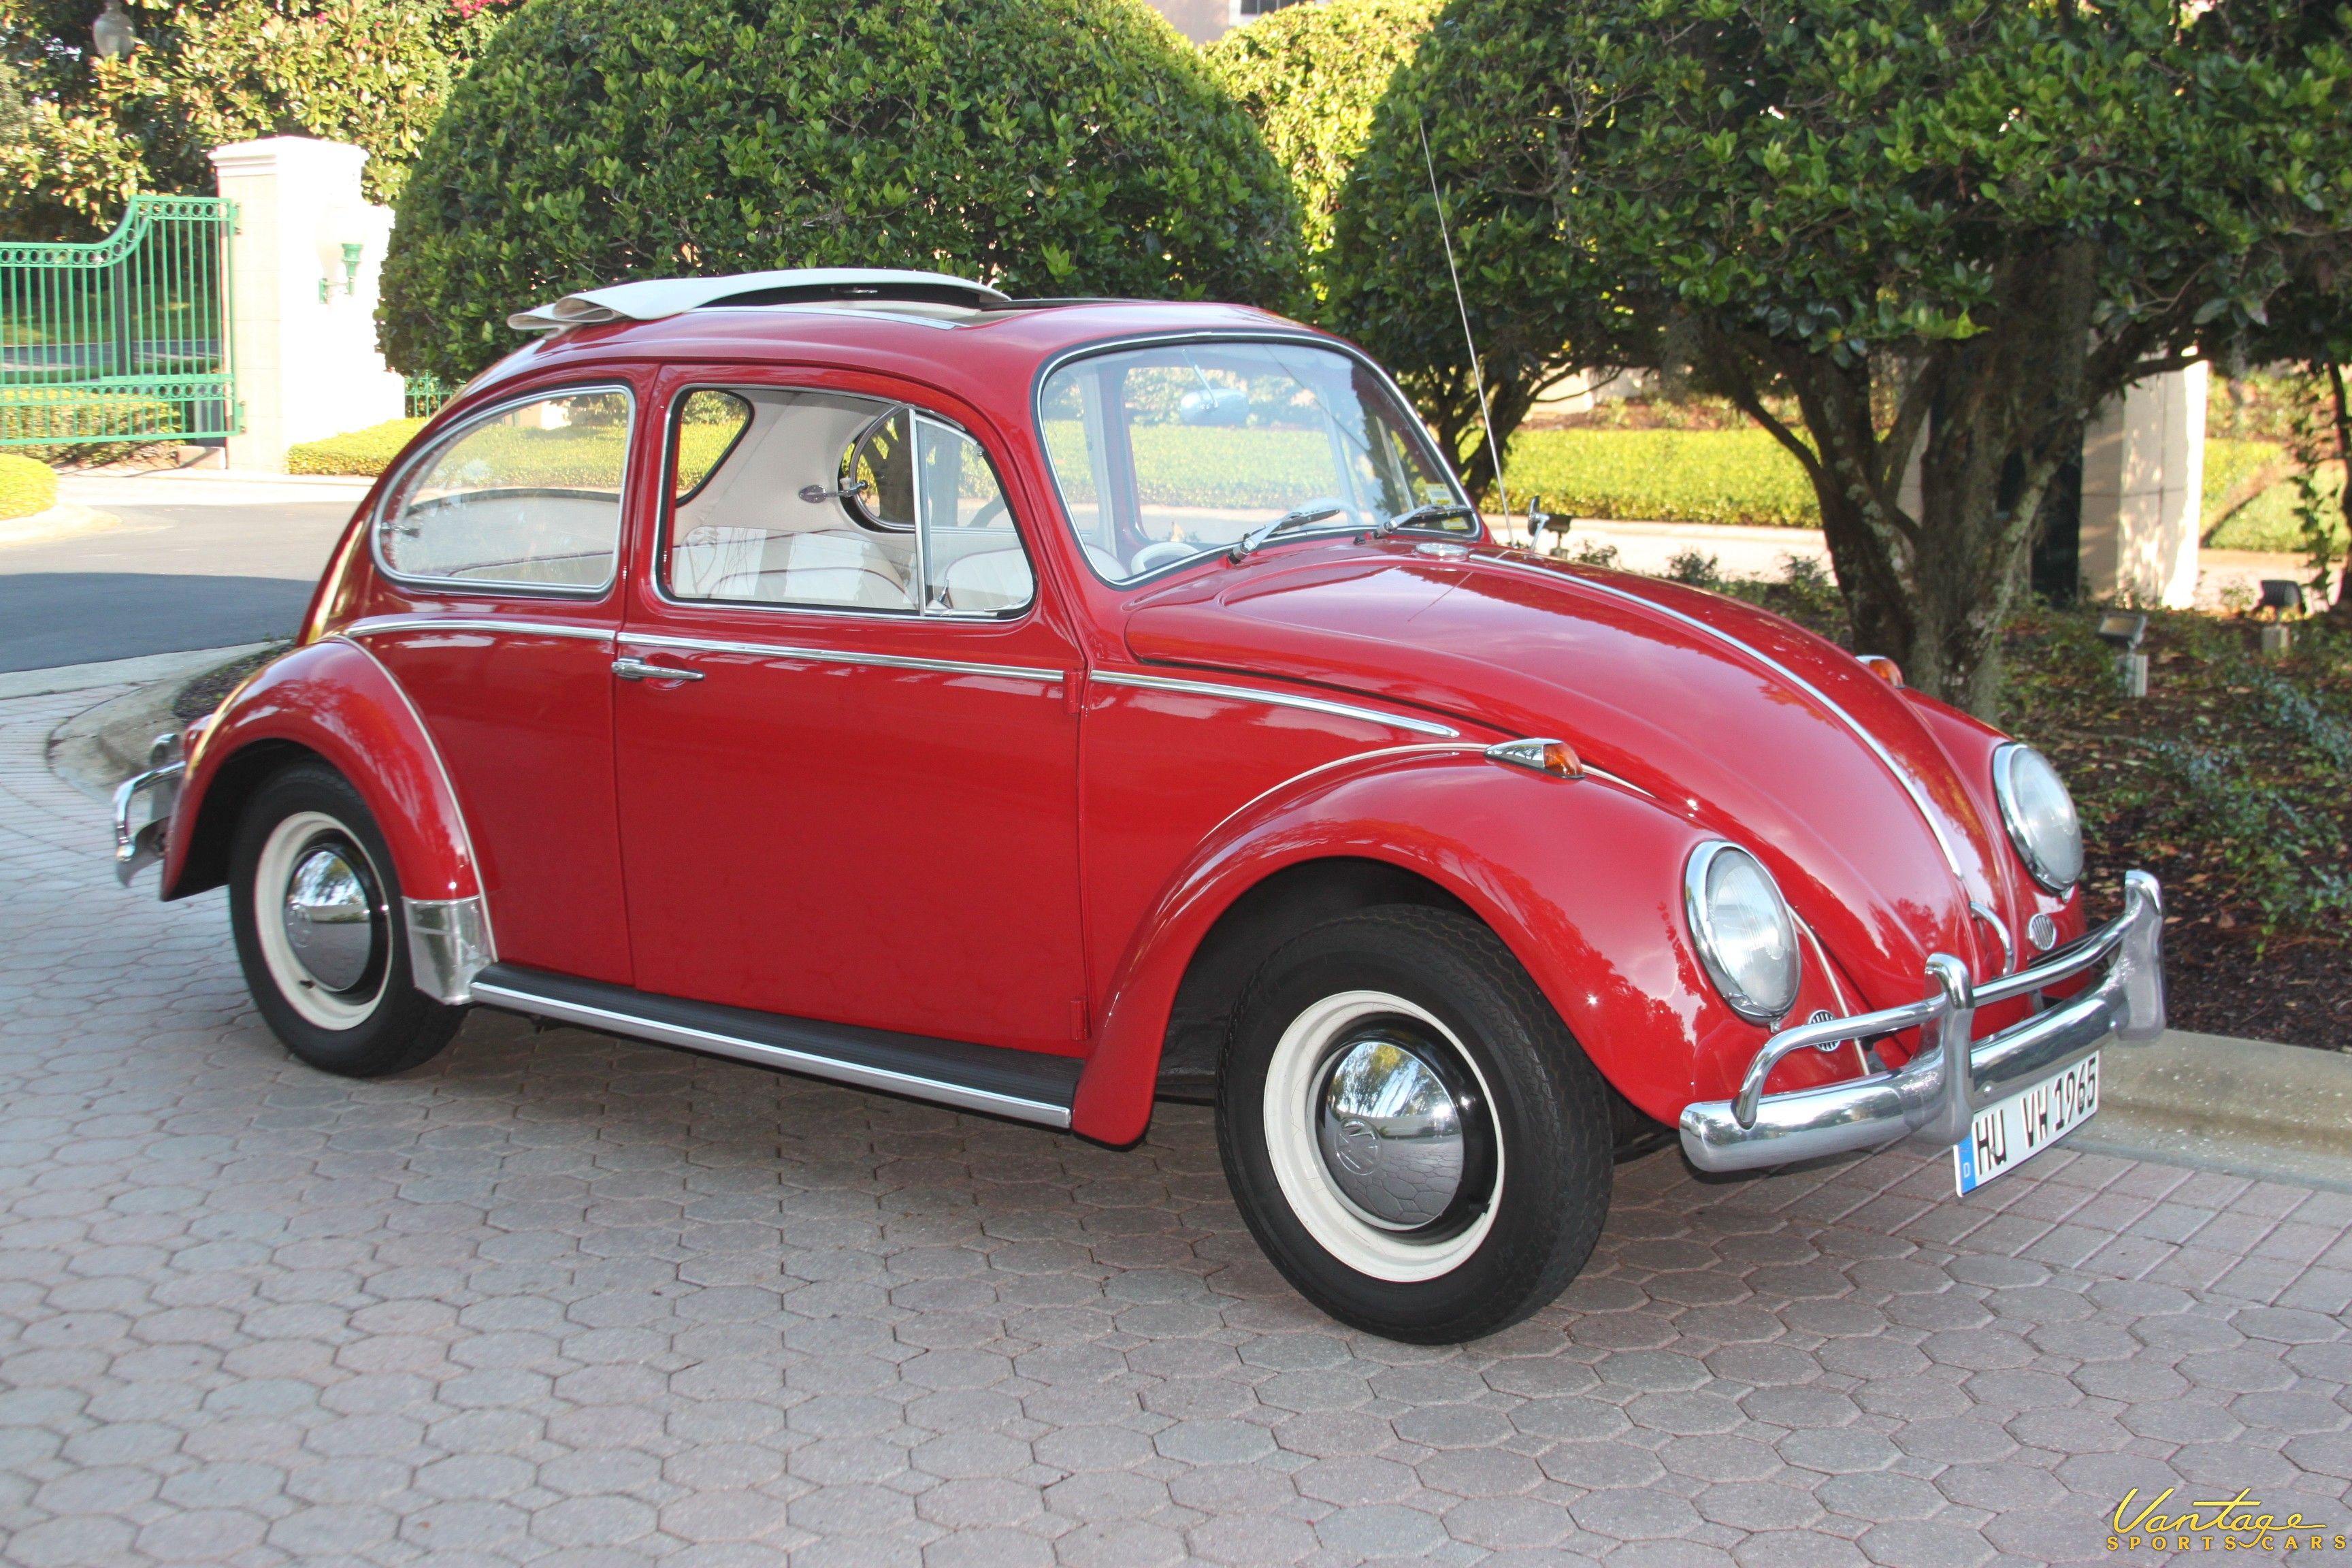 1965 Volkswagen Beetle   SOLD     Vantage Sports Cars   Vantage     Sold